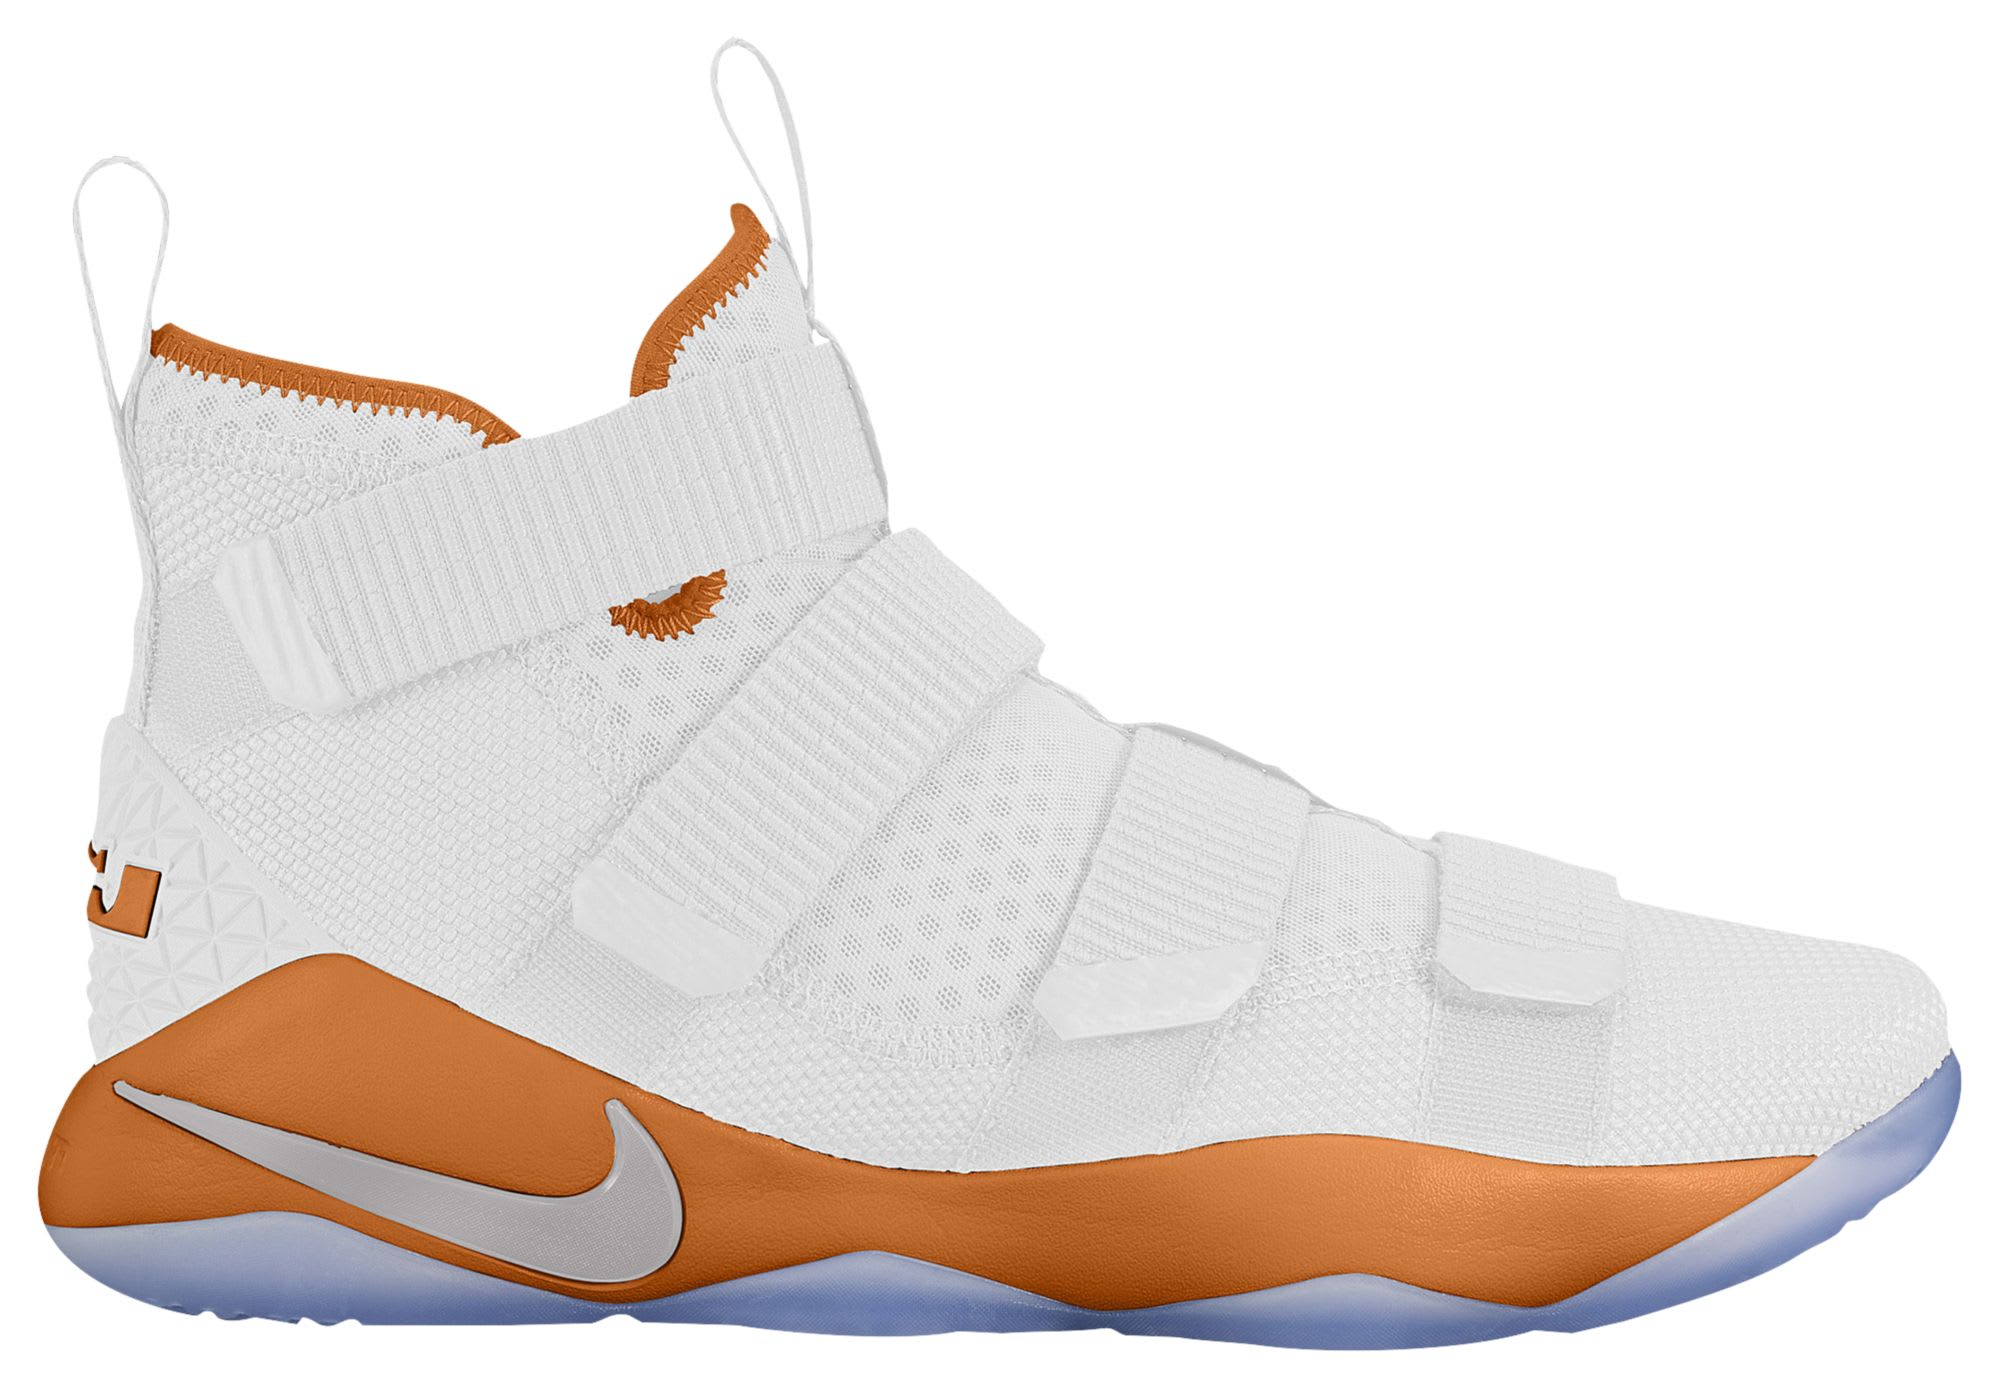 Nike LeBron Soldier 11 TB White Dark Orange